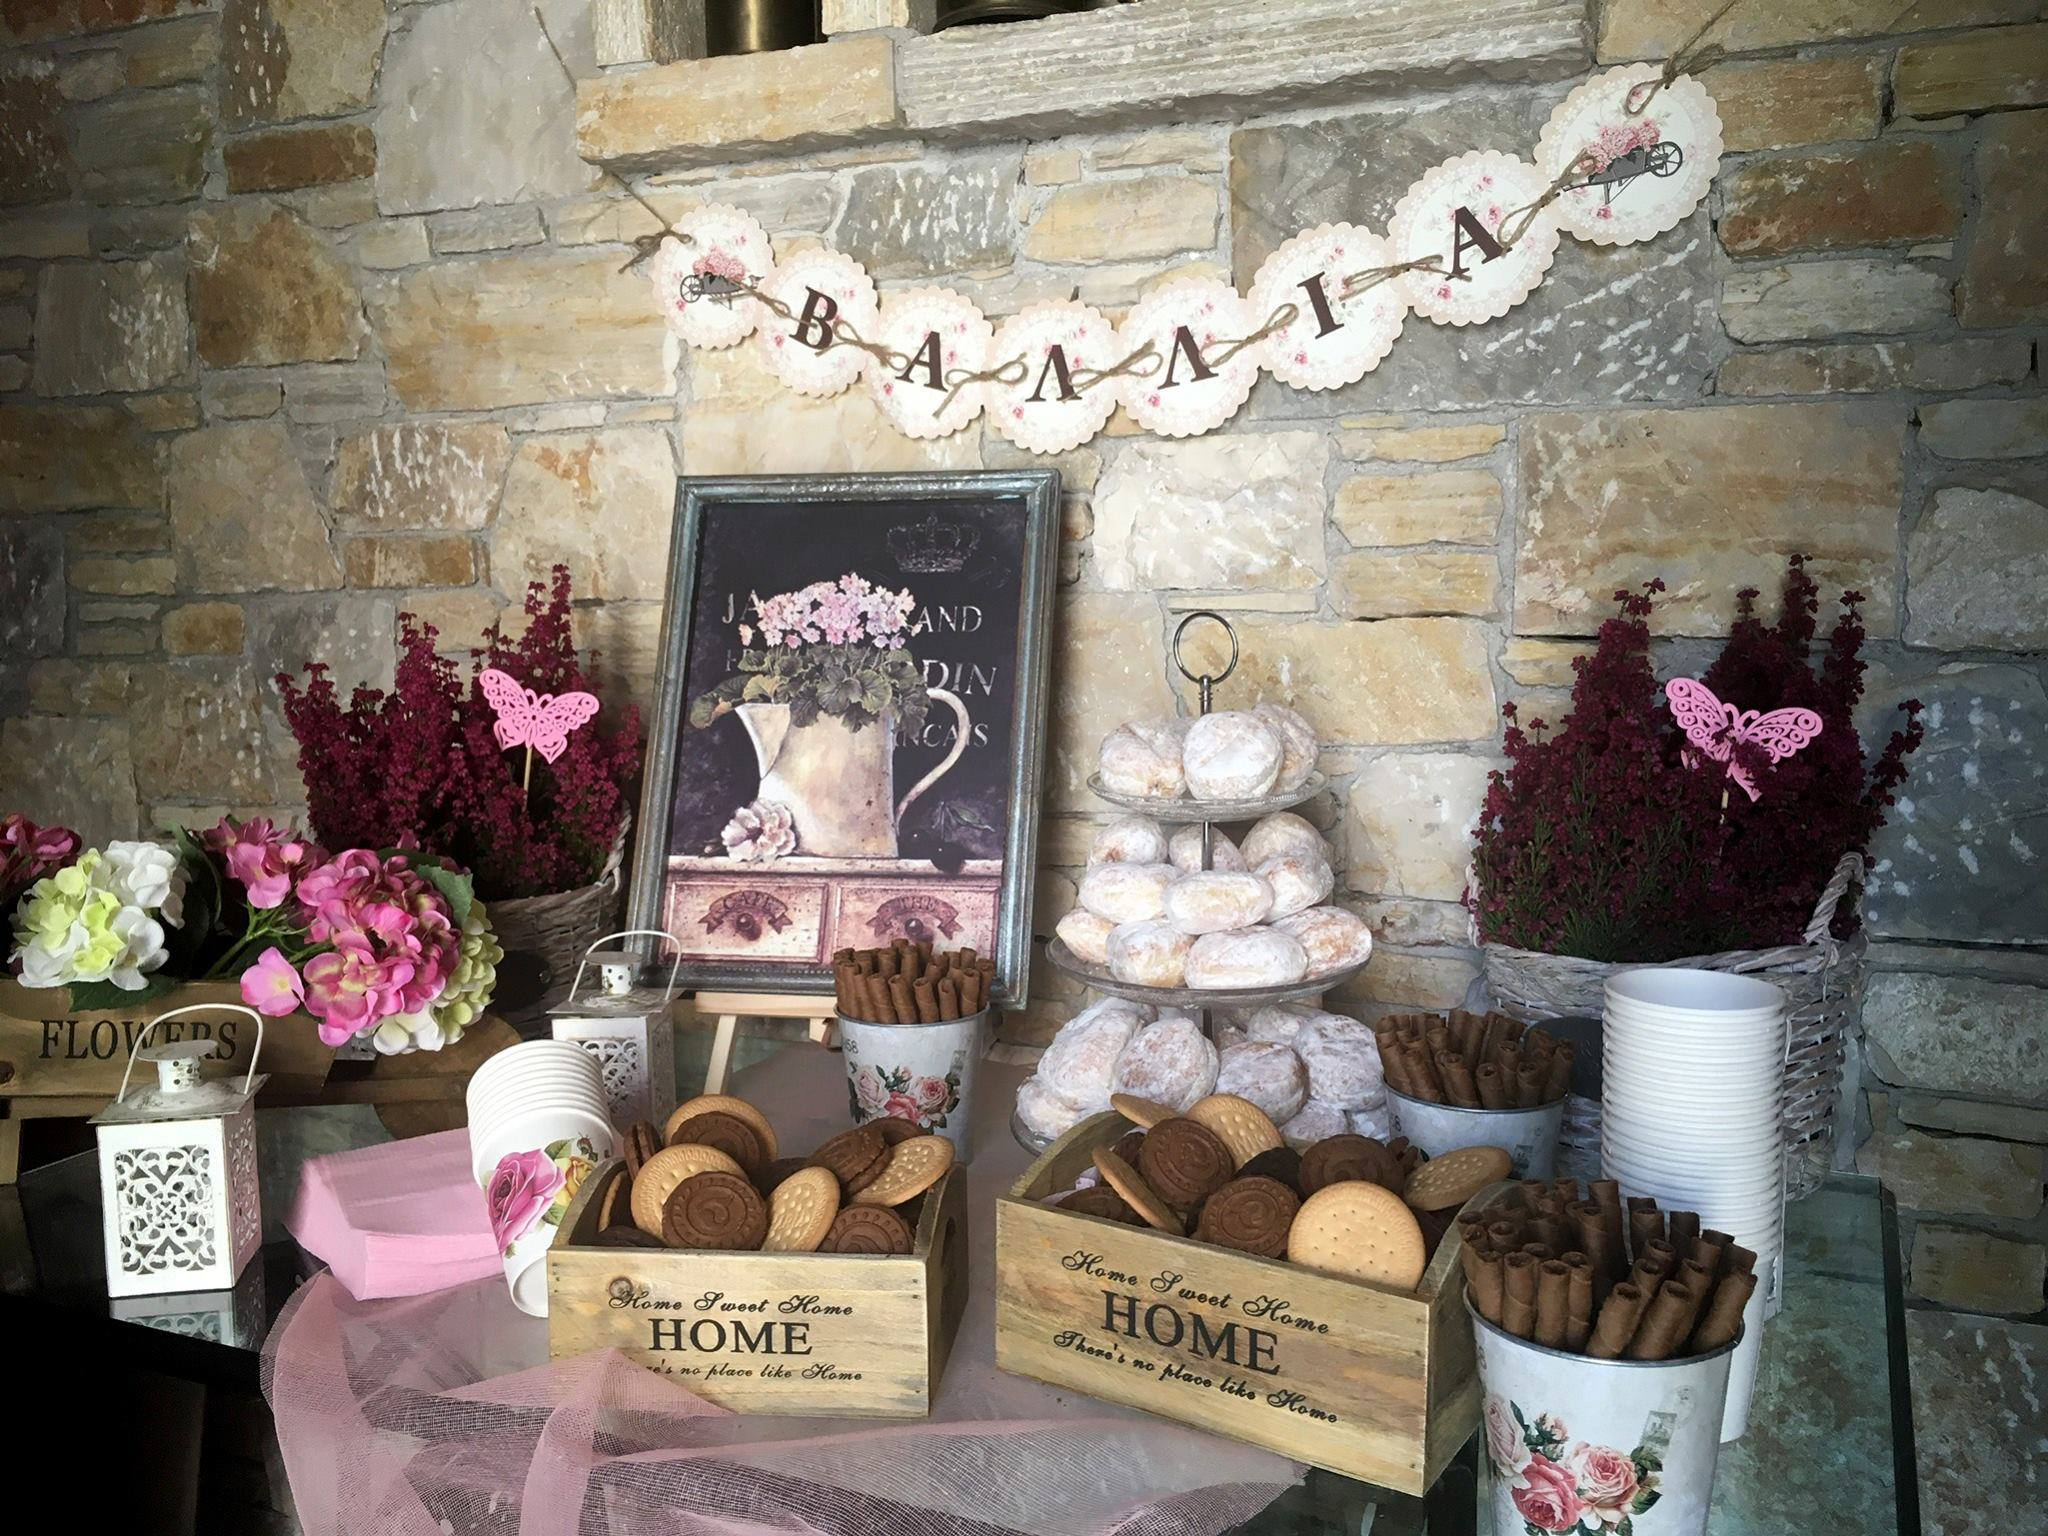 Baptism Christening candy bar vintage romantic name garland table floral boho chic pastel tulle flowers wish sweets donuts backet pot sewing machine rocks cellar blackboard frame decoration bow crates wooden lantern